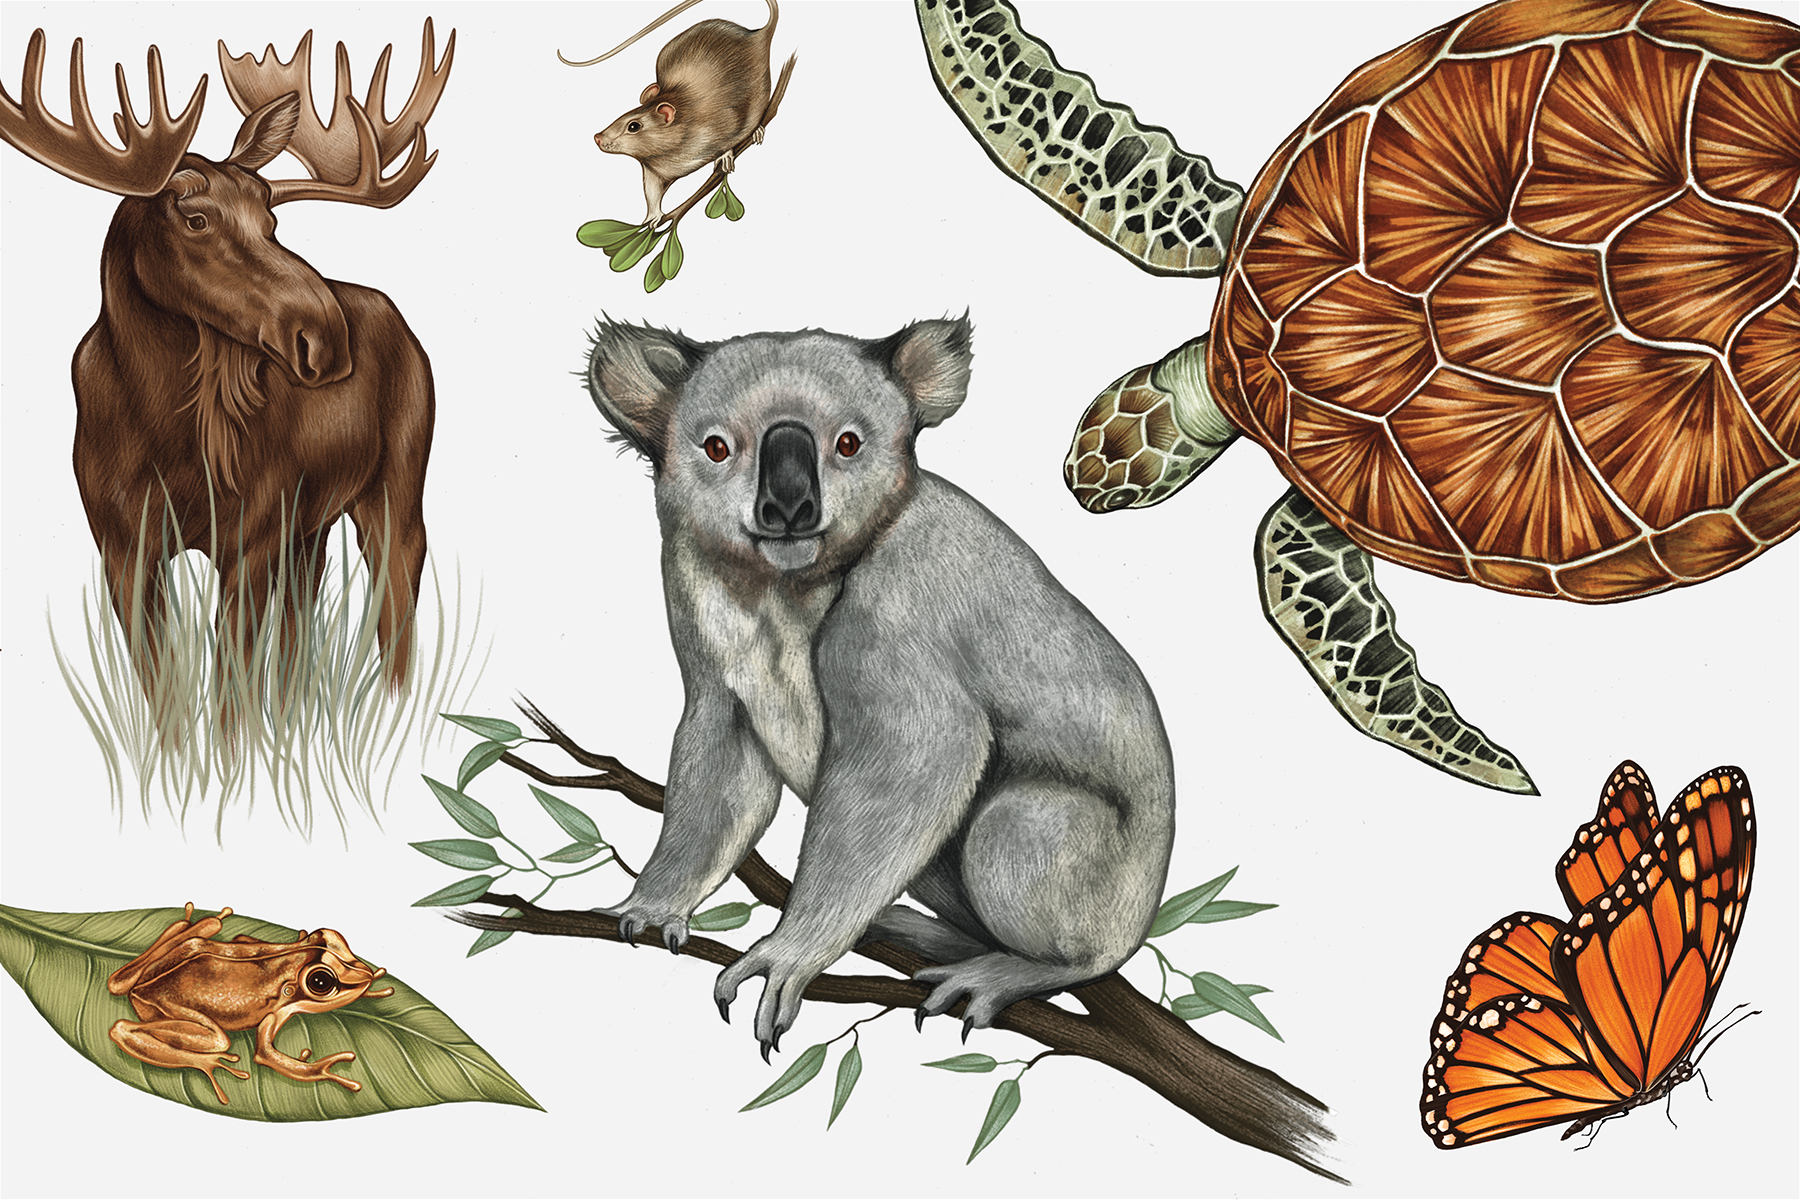 Animal Species on the Eve of Extinction - Rolling Stone